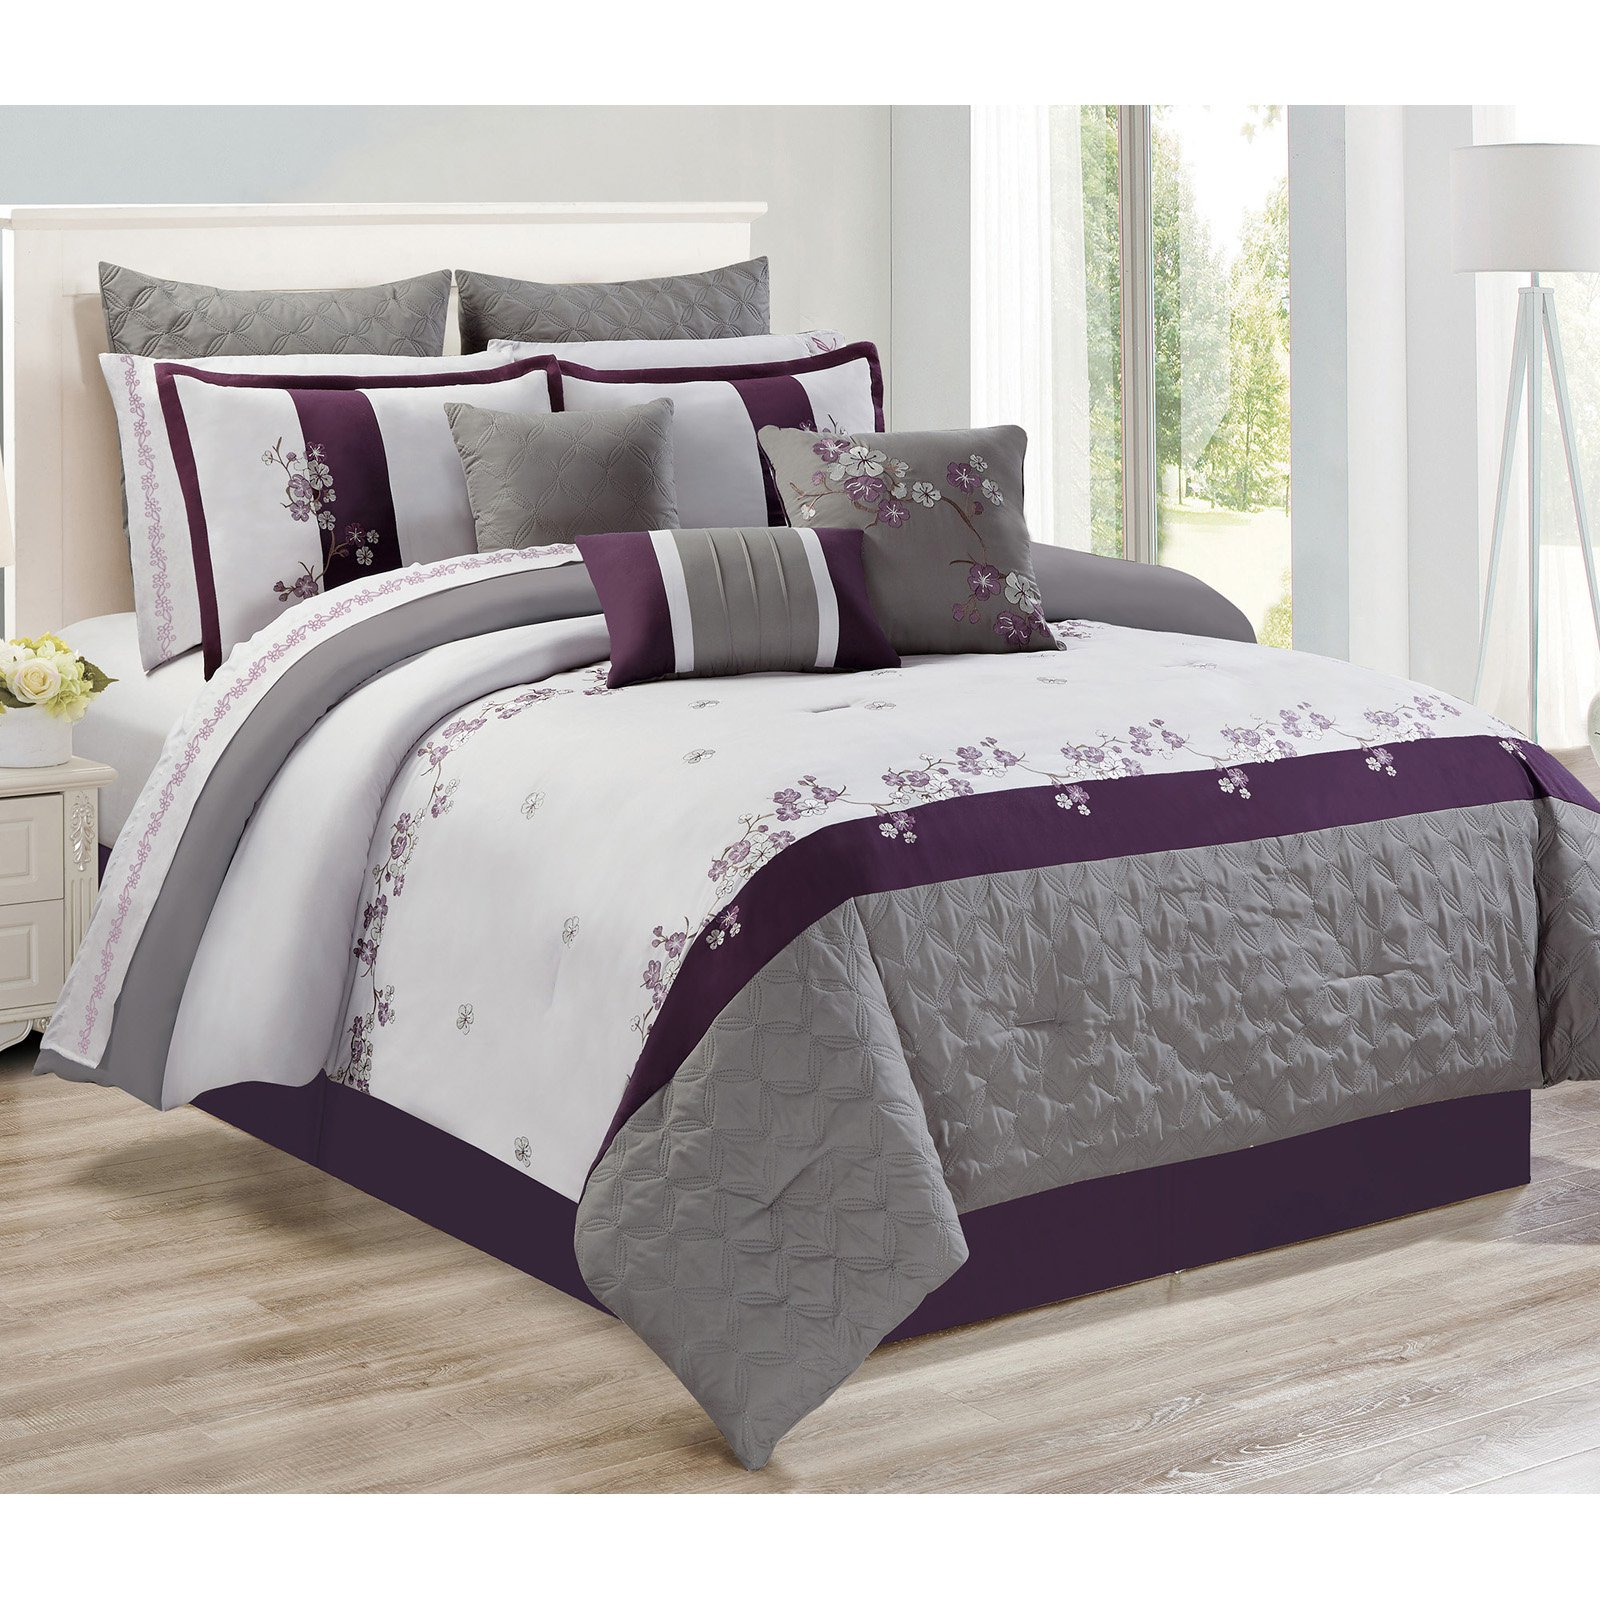 Adina 7 Piece Comforter Set by Safdie and Co